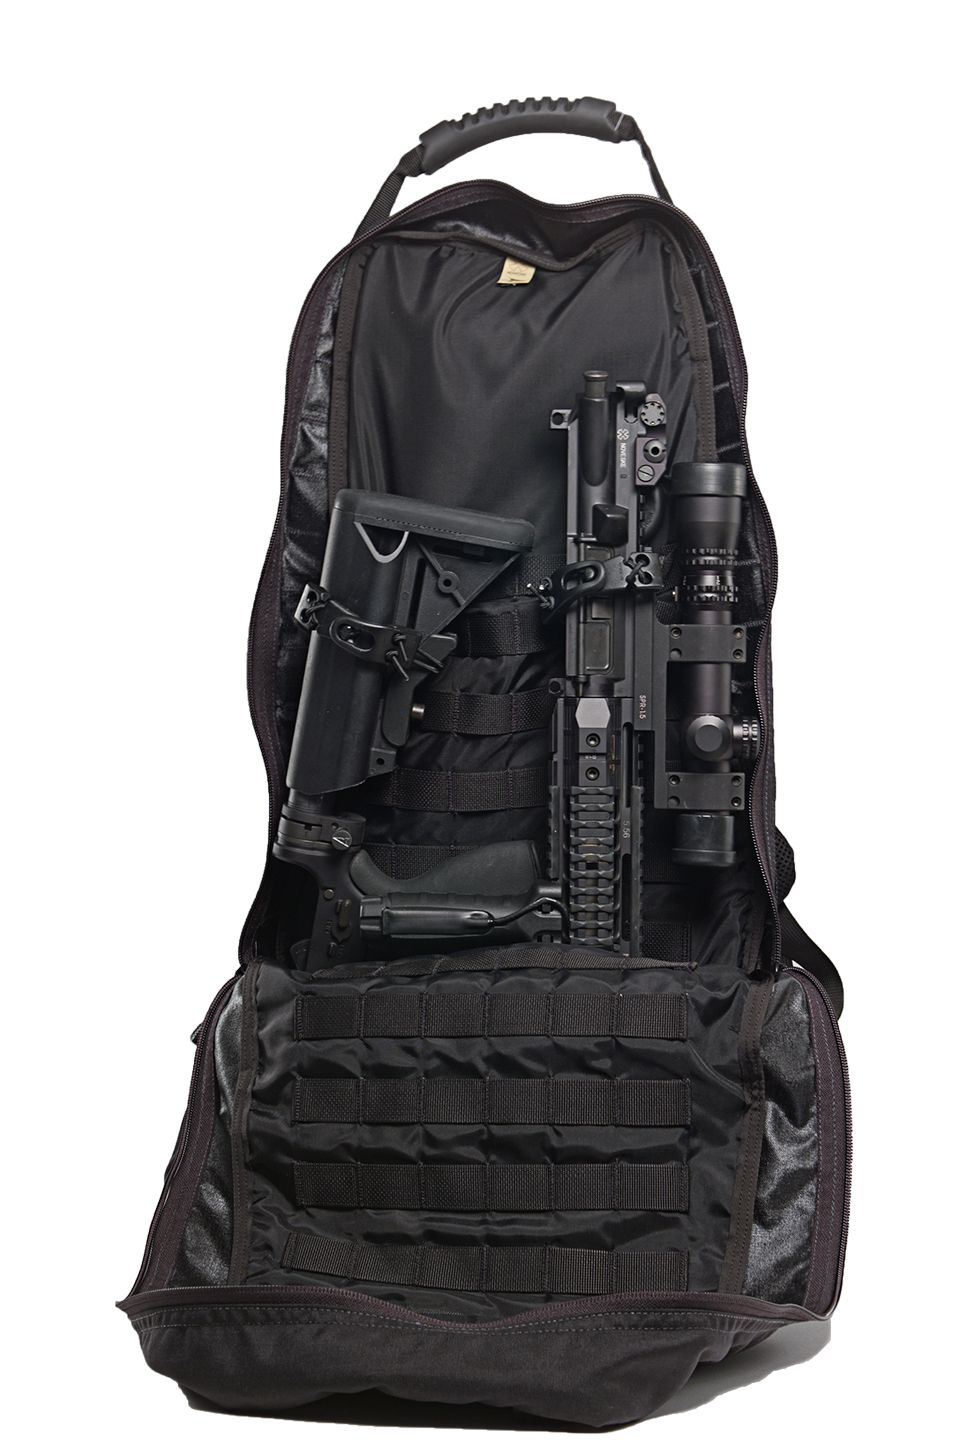 4d7e5e93ea Discreet Carry AR-15 Backpacks For